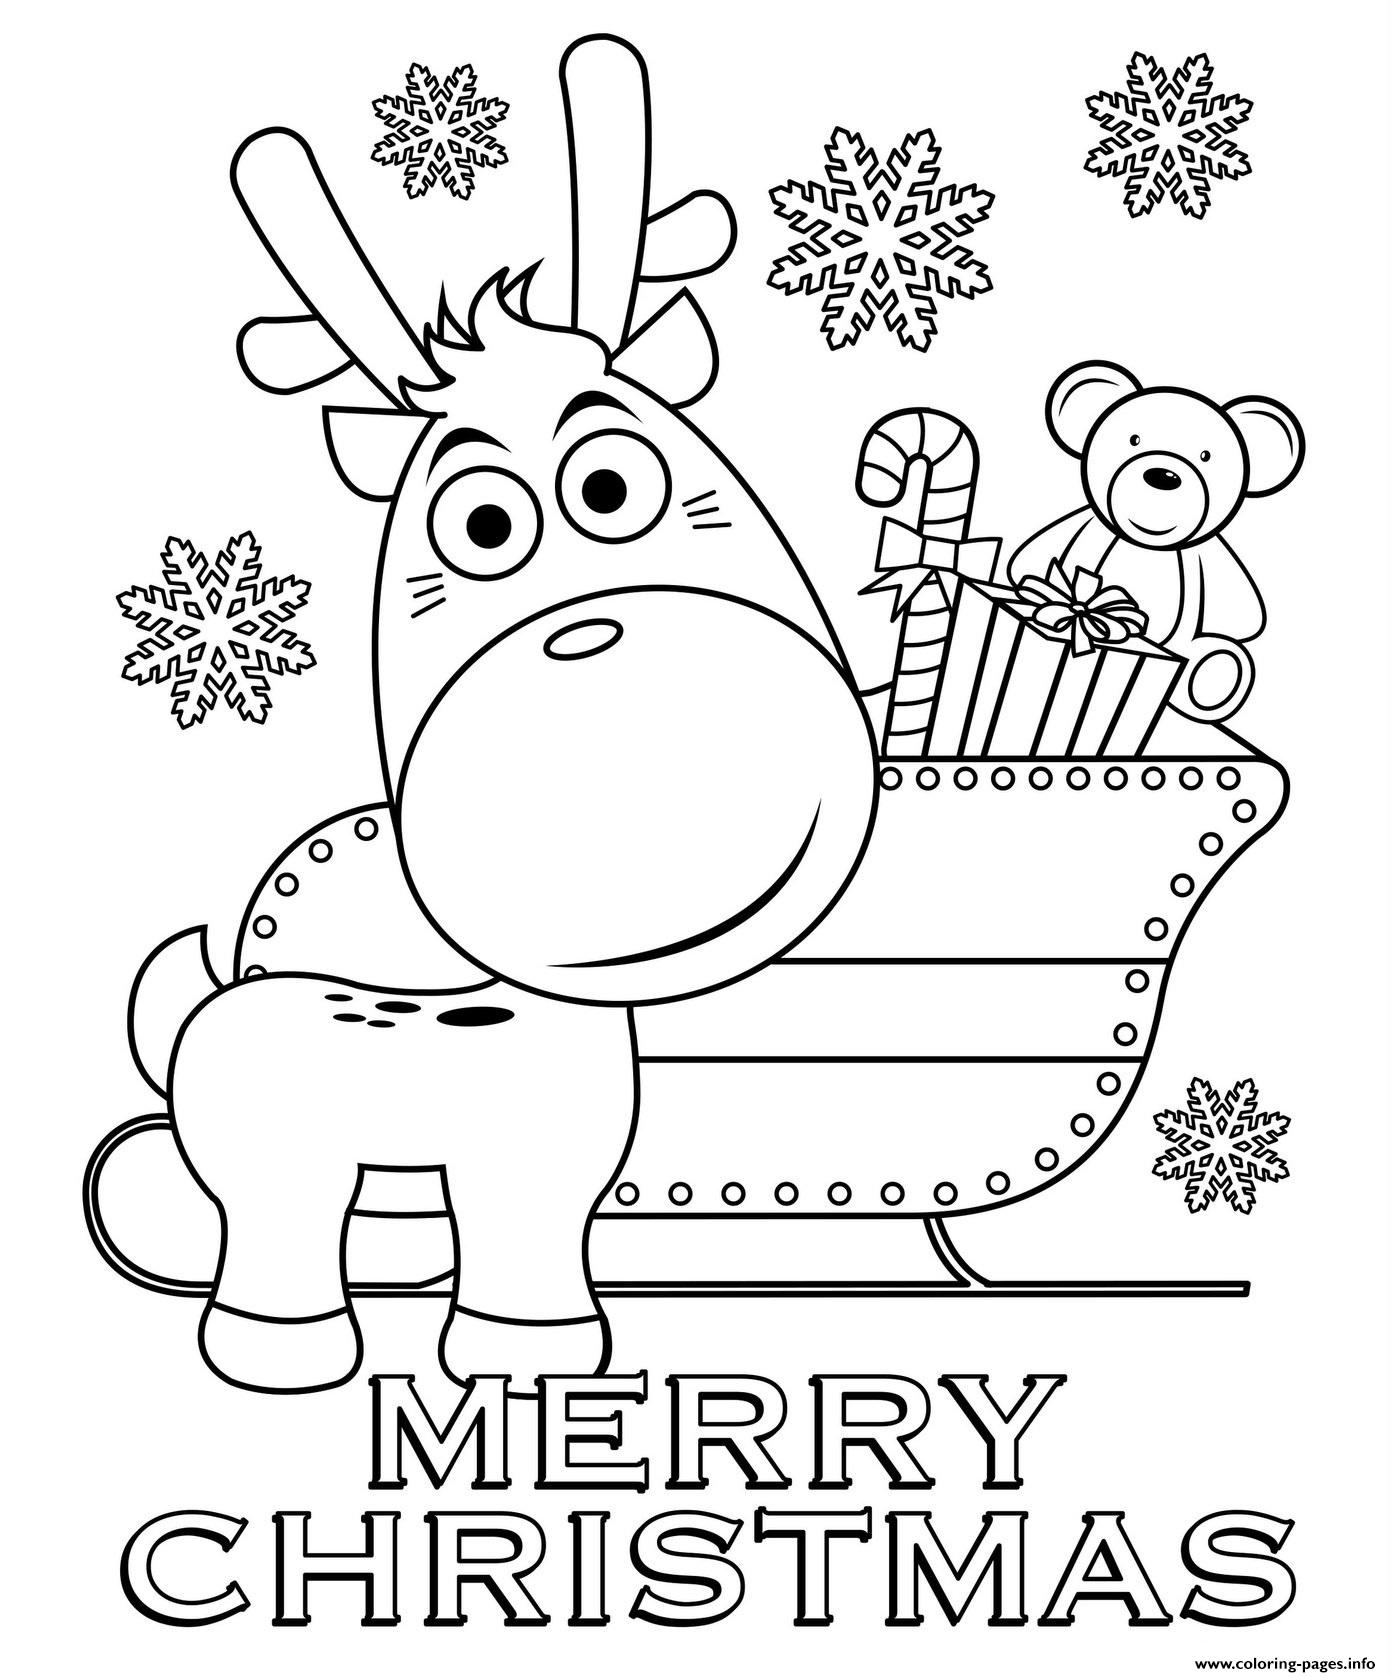 Merry Christmas Reindeer And Sleigh Coloring Pages Printable